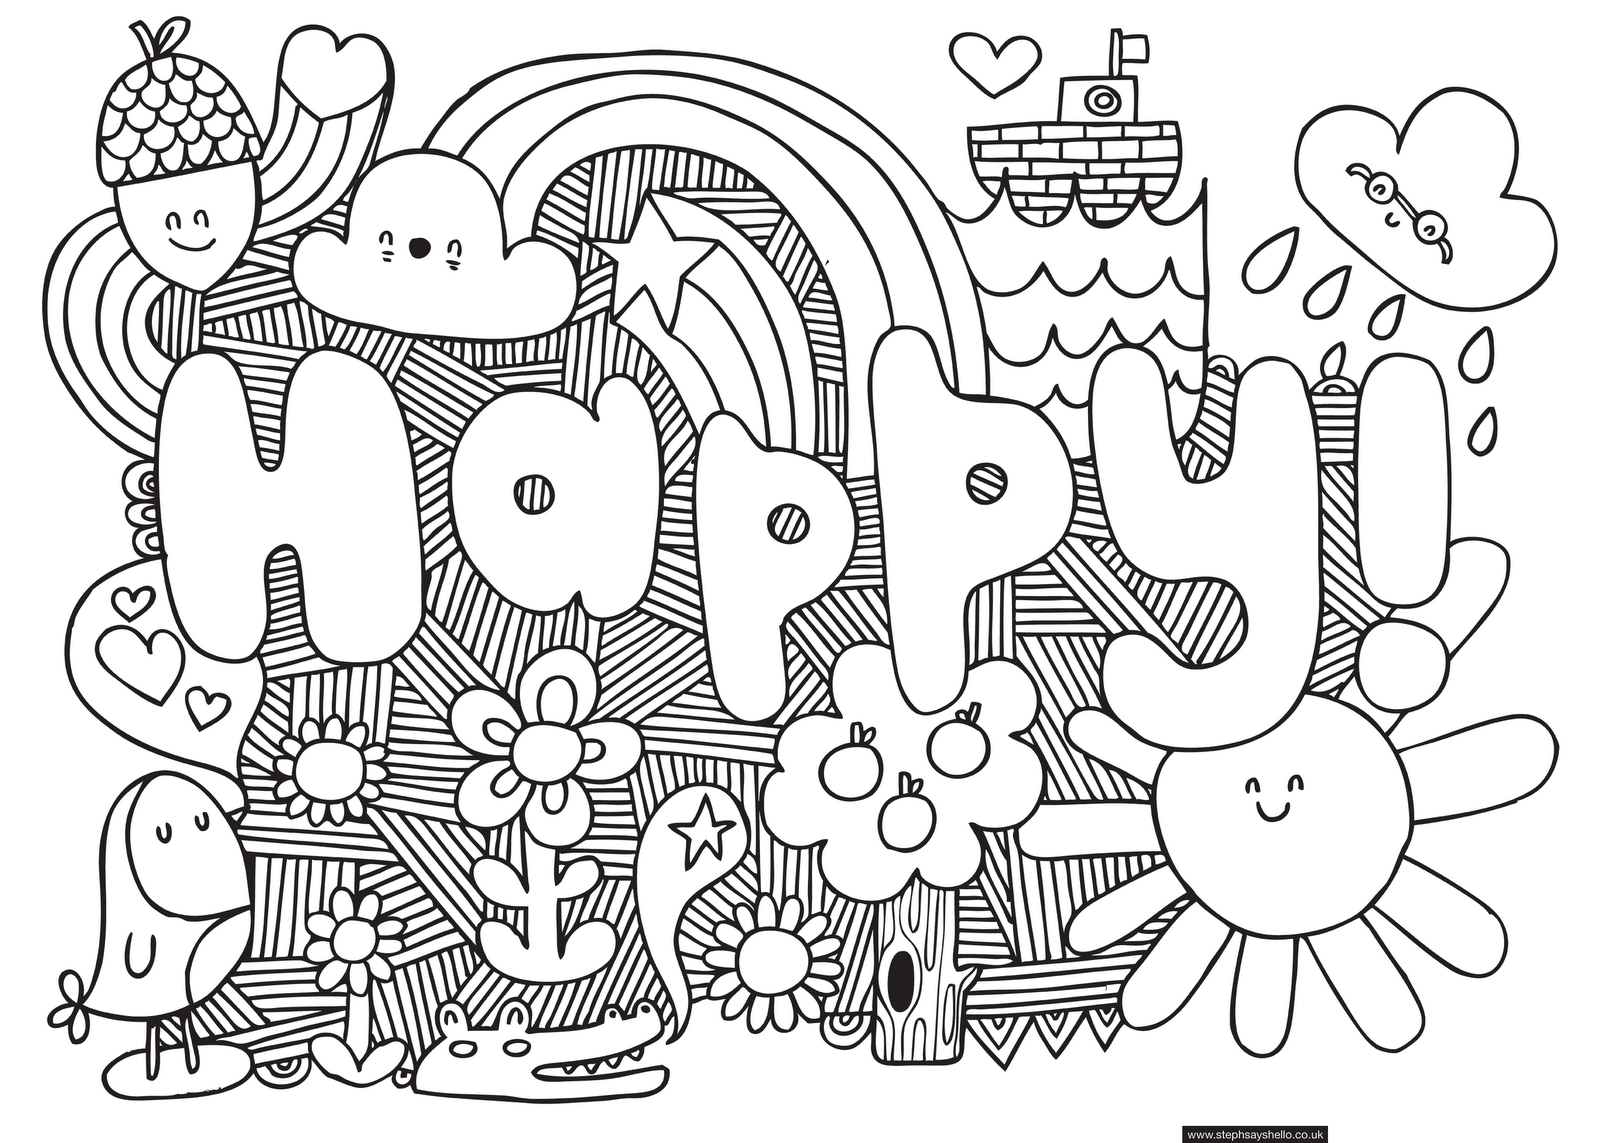 - Cool For Older Kids - Coloring Pages For Kids And For Adults